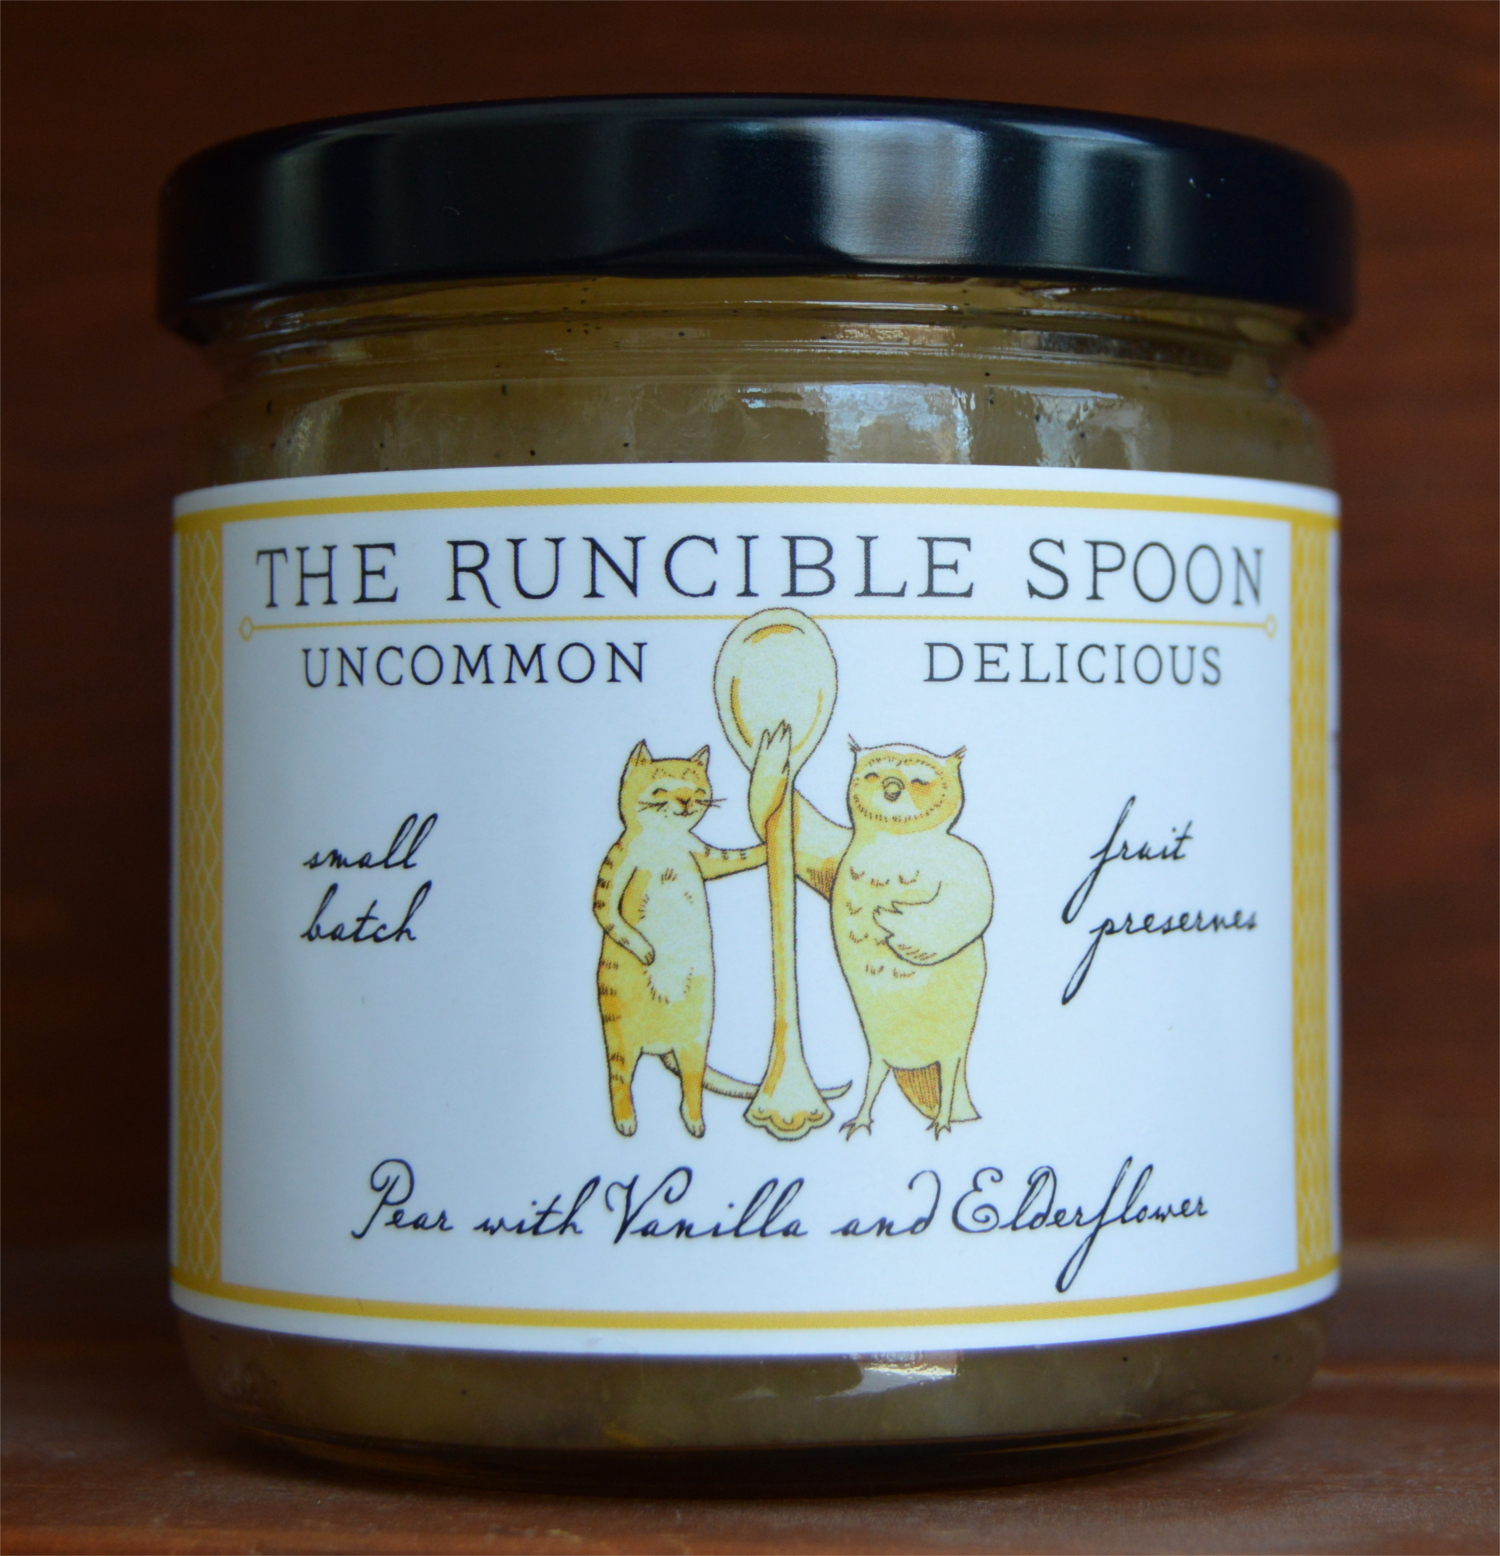 The Runcible Spoon - The Runcible Spoon is committed to sourcing their fruit from Ohio farms. In their jams,